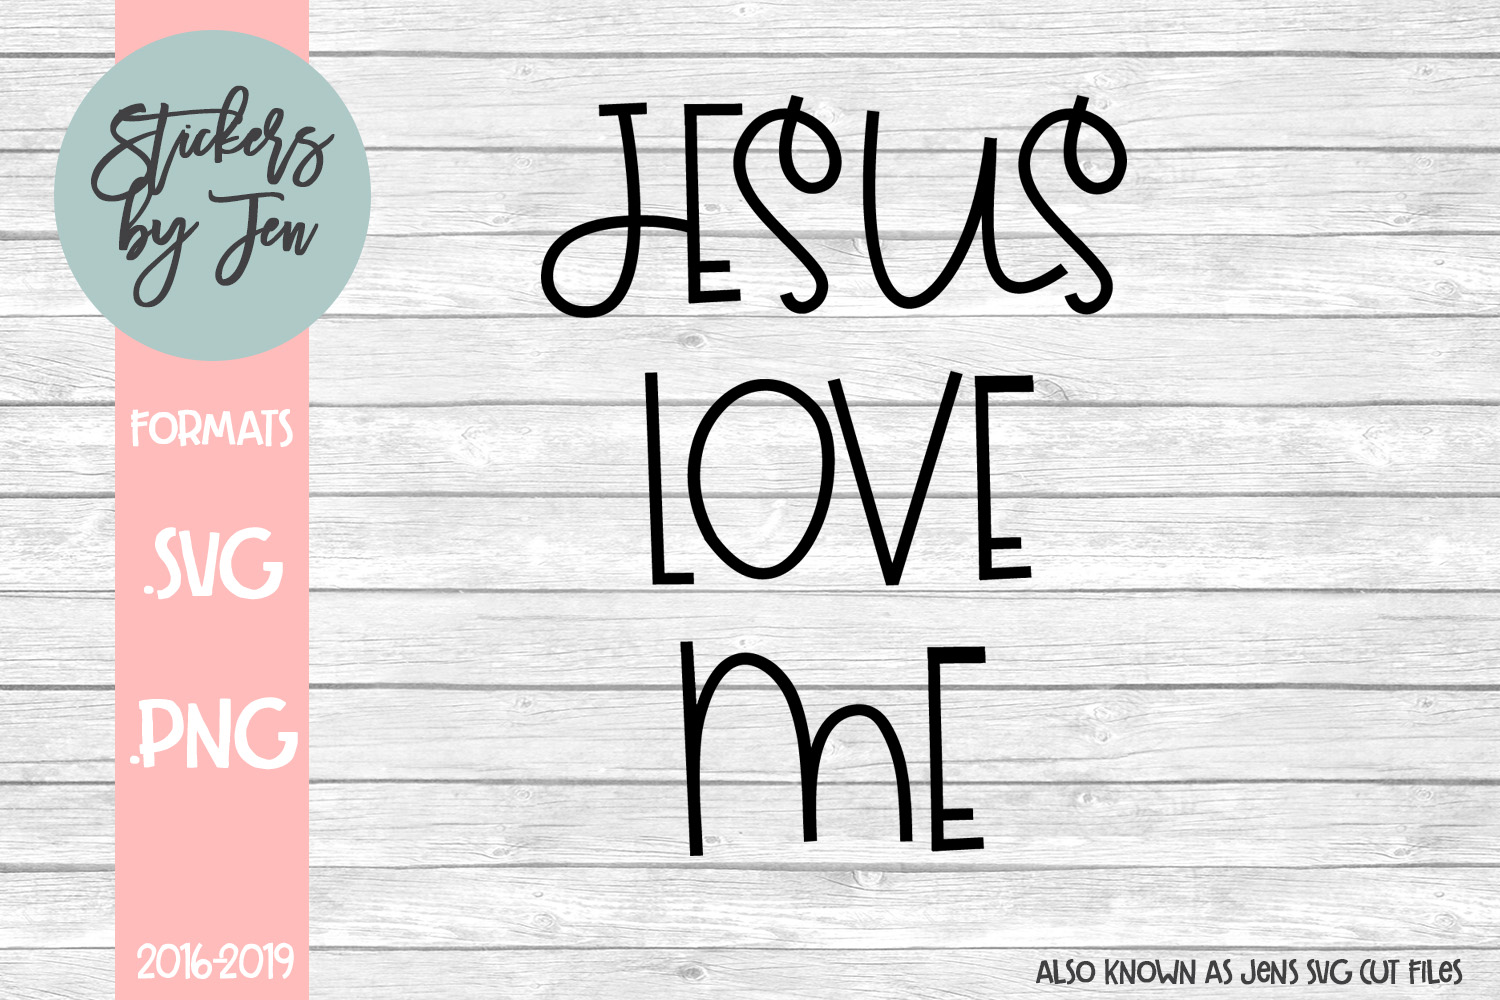 Jesus Loves Me Svg Graphic By Stickers By Jennifer Creative